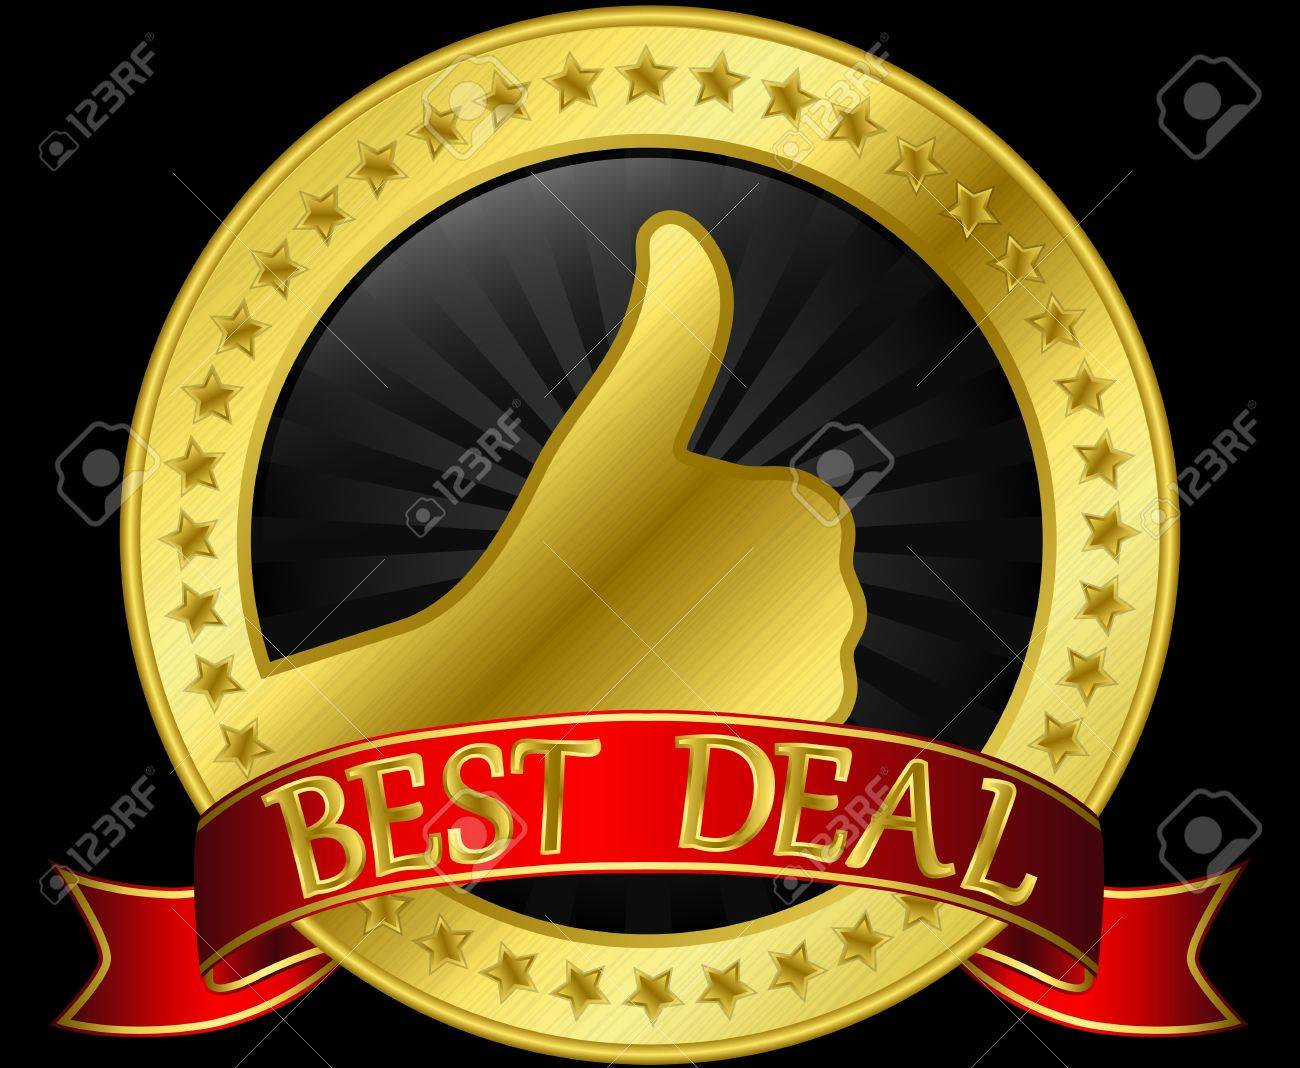 Best Deal Golden Label With Ribbon Royalty Free Cliparts, Vectors ...